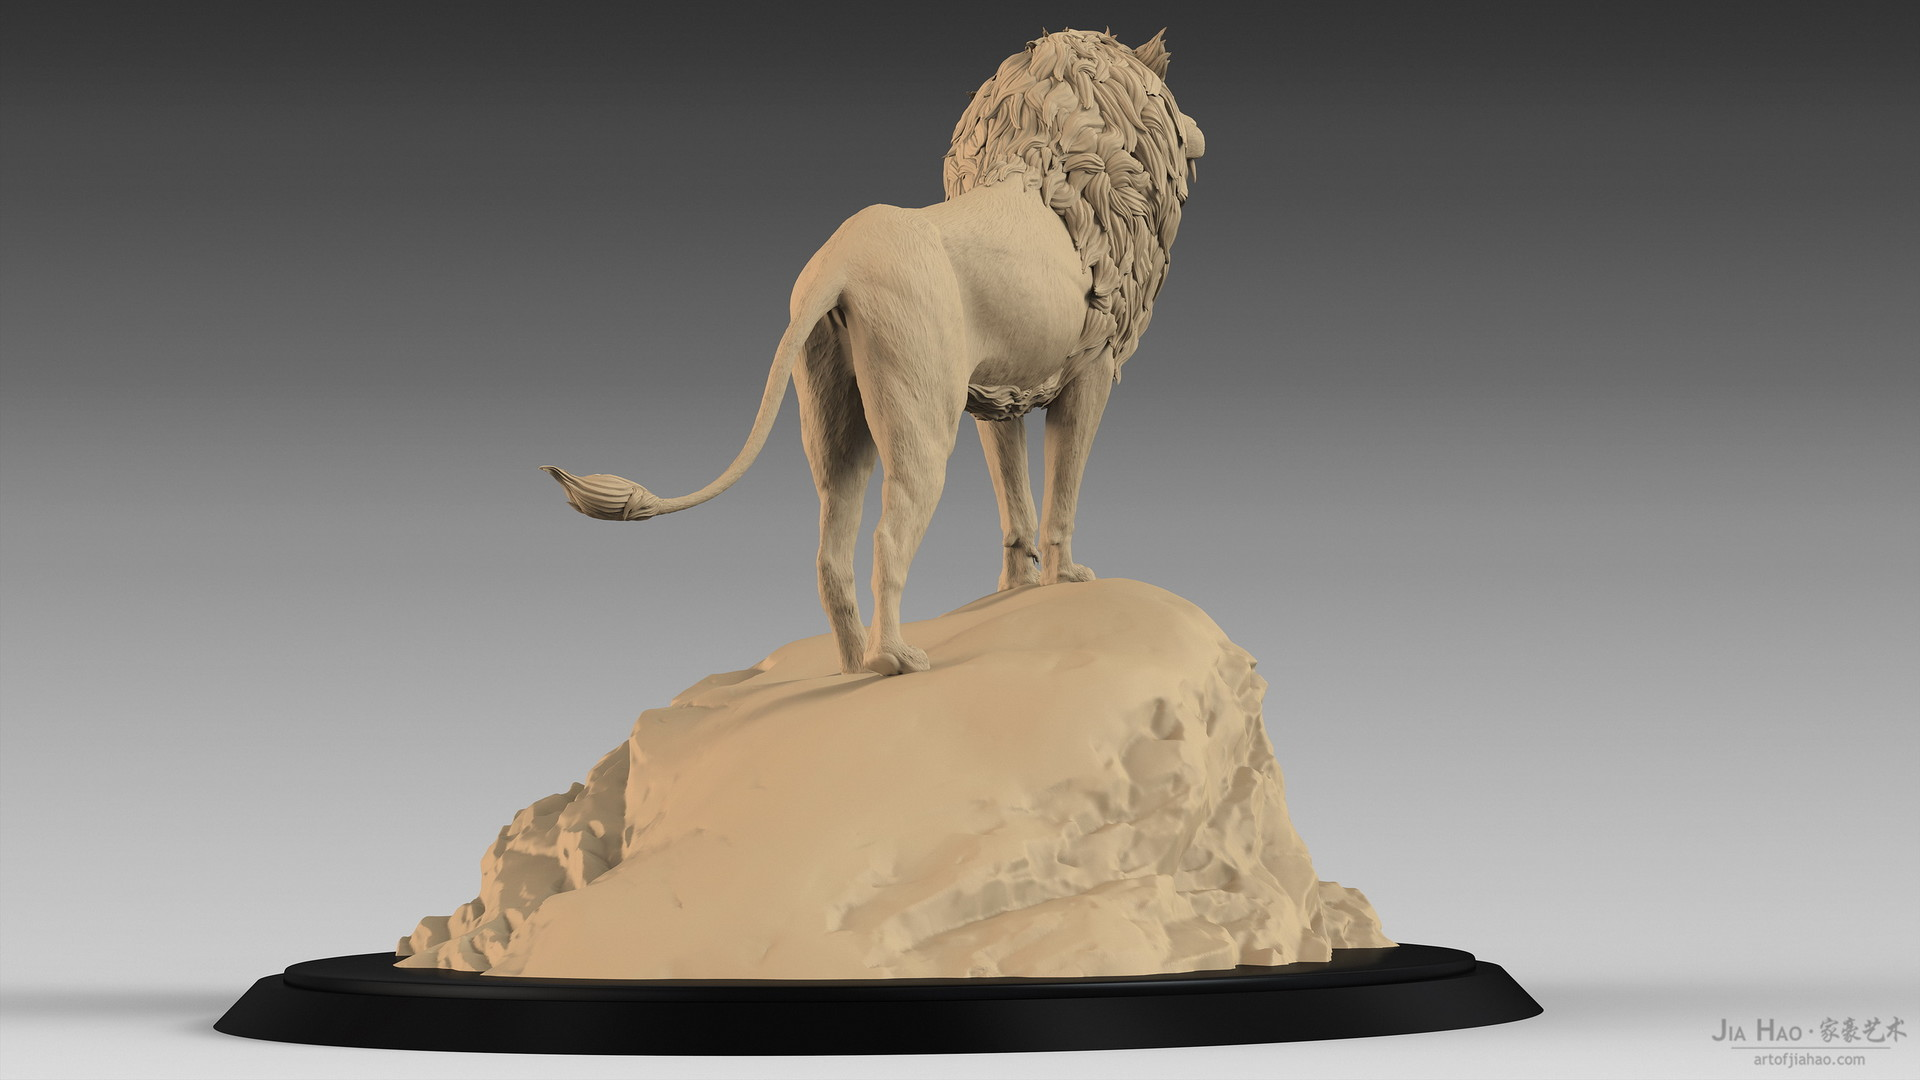 Jia hao lion digitalsculpturea 06